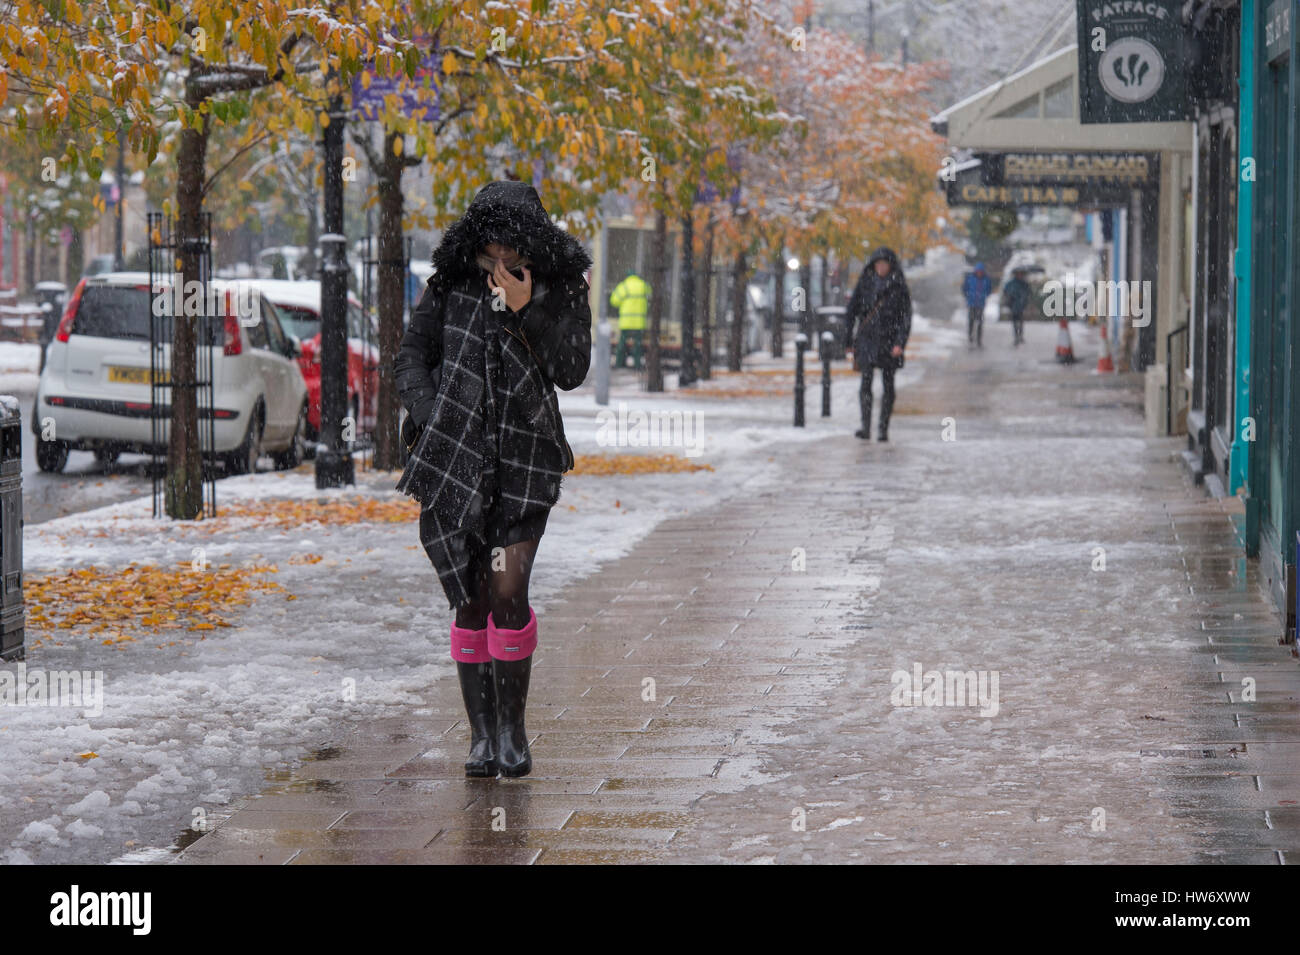 It is snowing and lady (other people too) wearing boots, scarf & winter coat with hood up, walks past shops on The Stock Photo